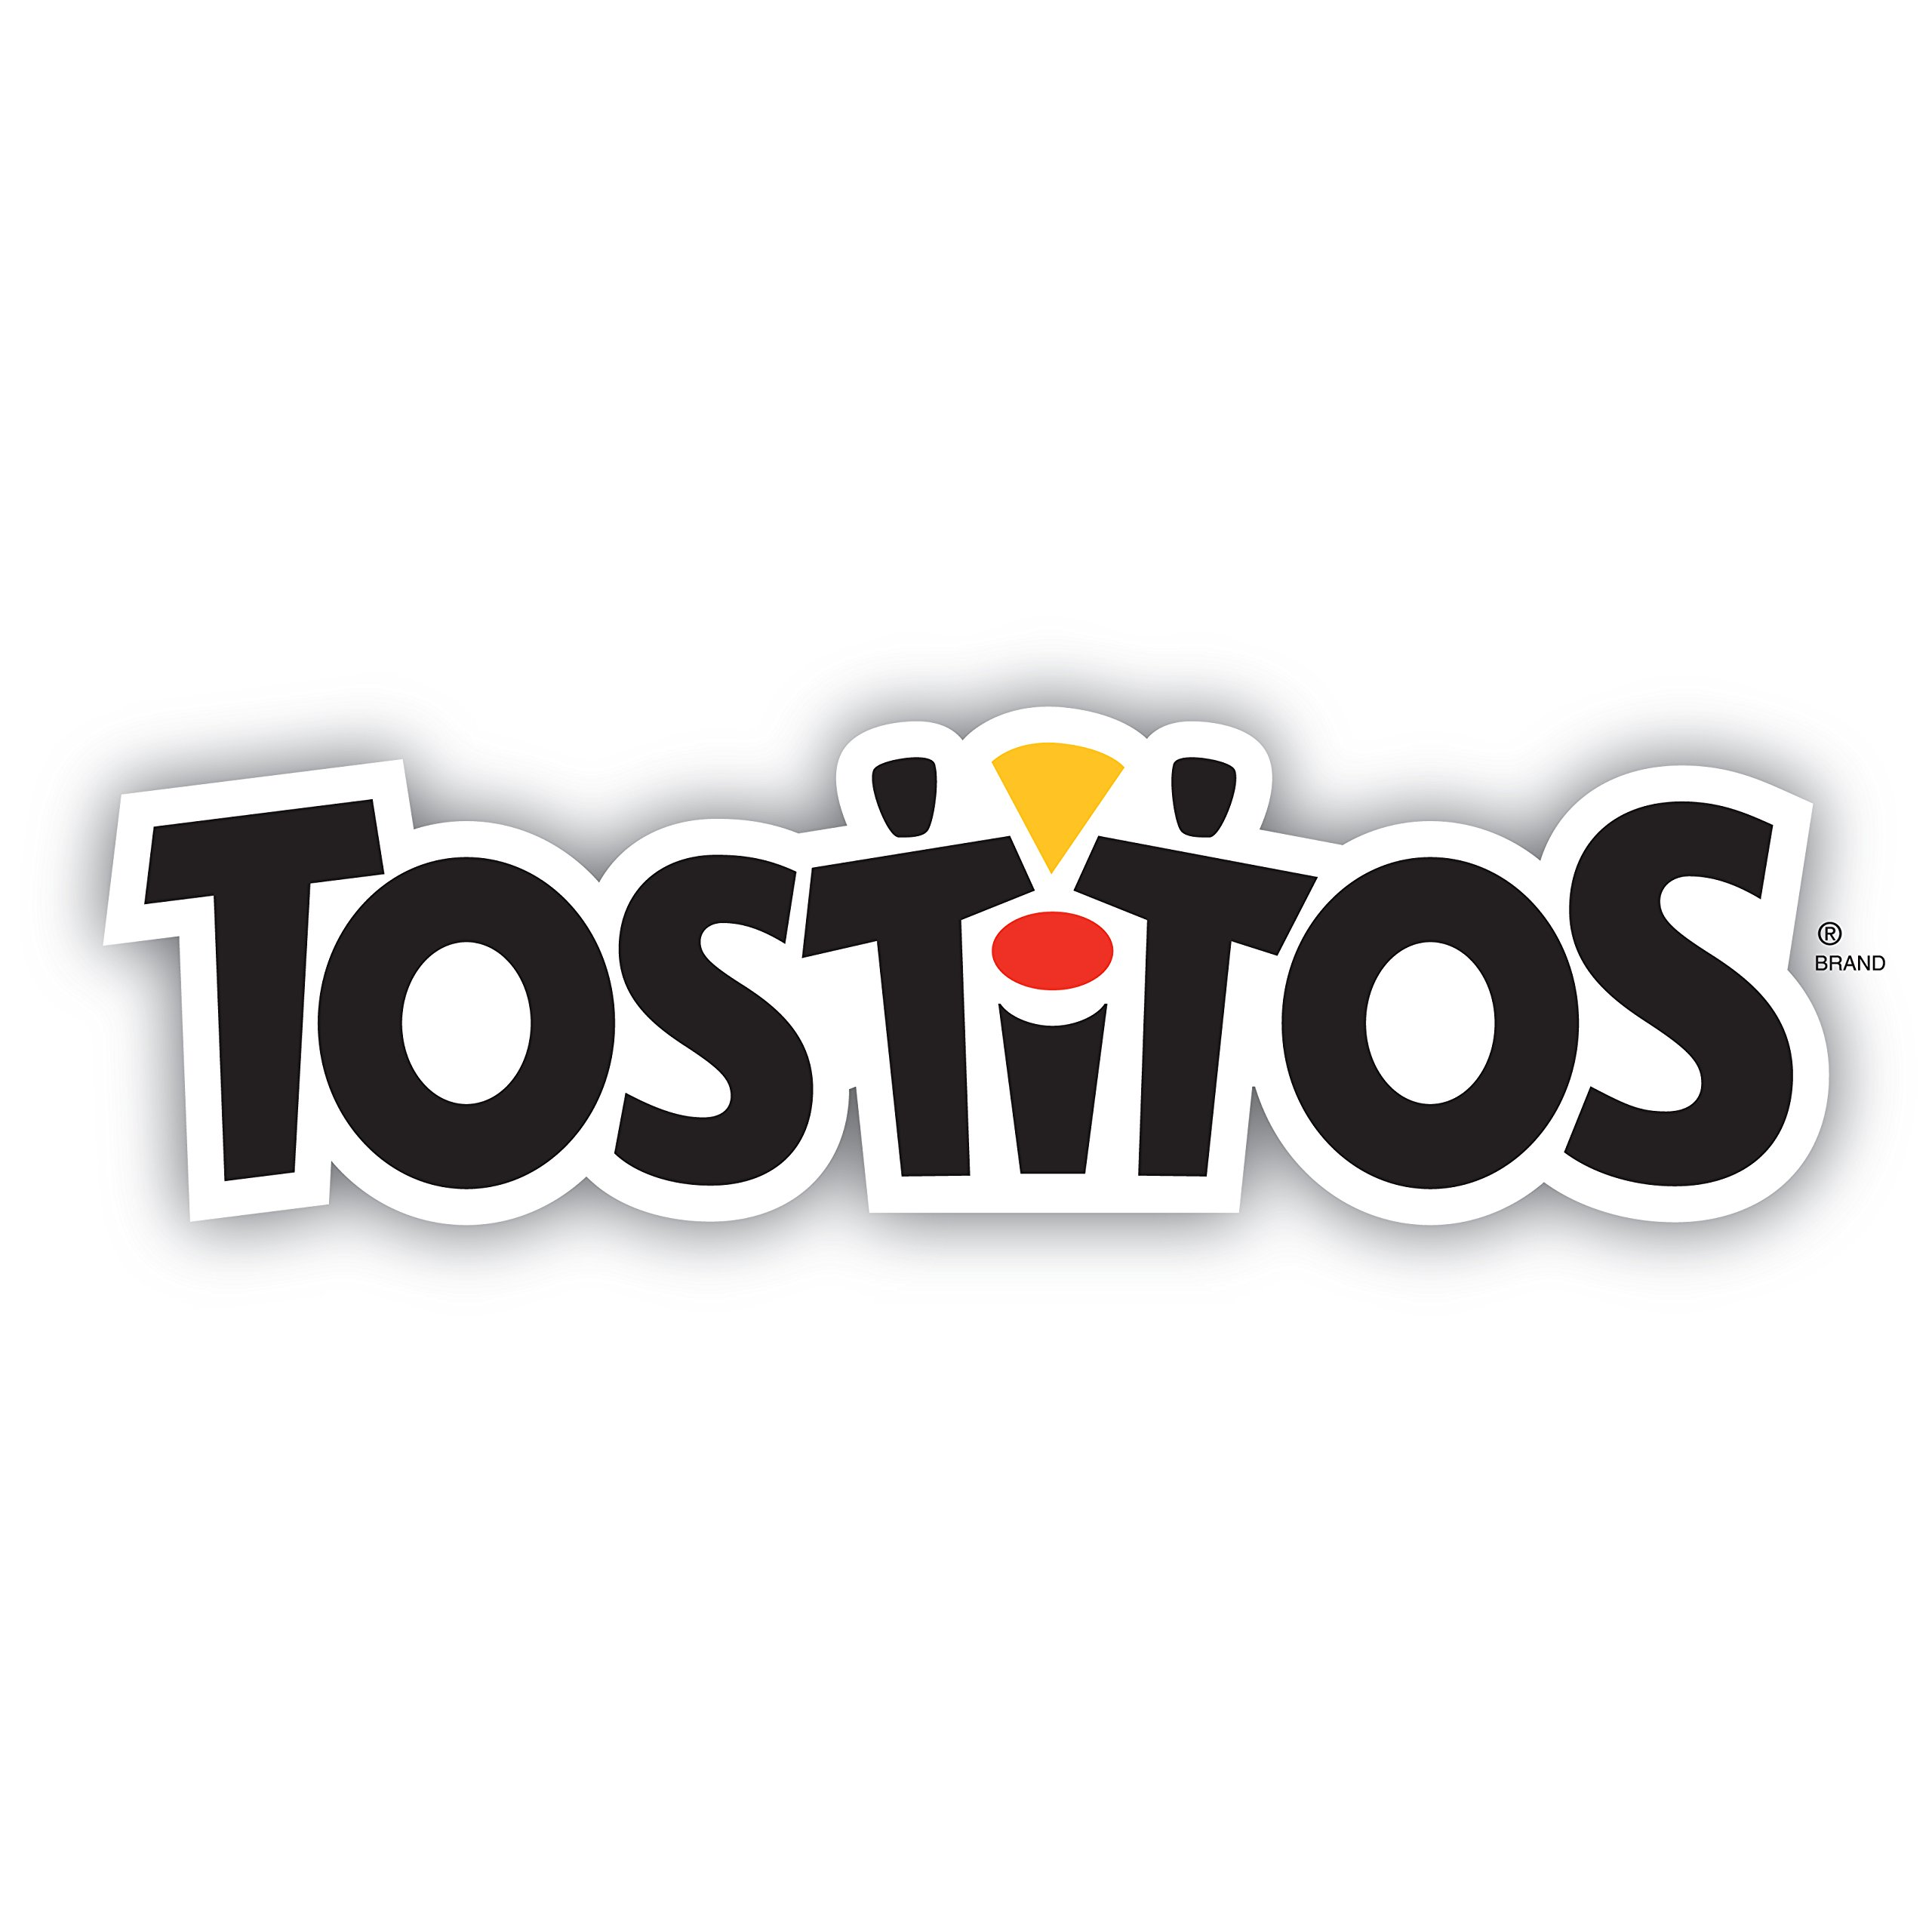 Lay's & Tostitos Party Salsa and Dips Variety Pack, 4 Count by Frito Lay (Image #6)